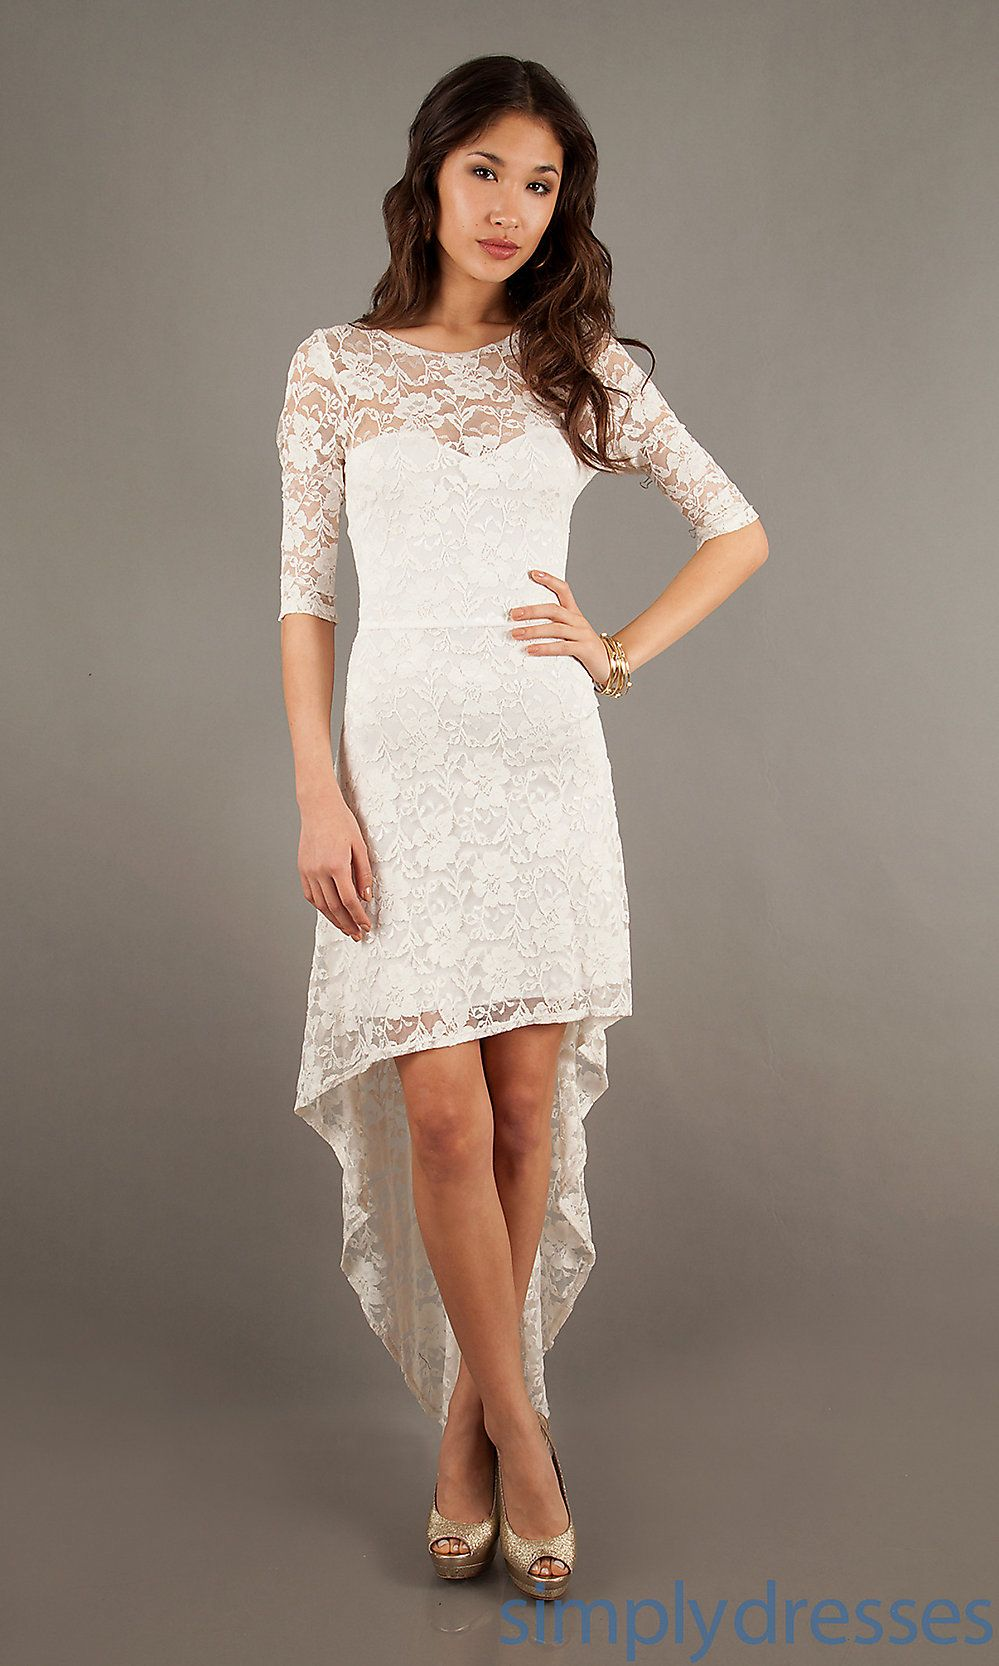 Dresses, Formal, Prom Dresses, Evening Wear: High Low Lace Dress ...